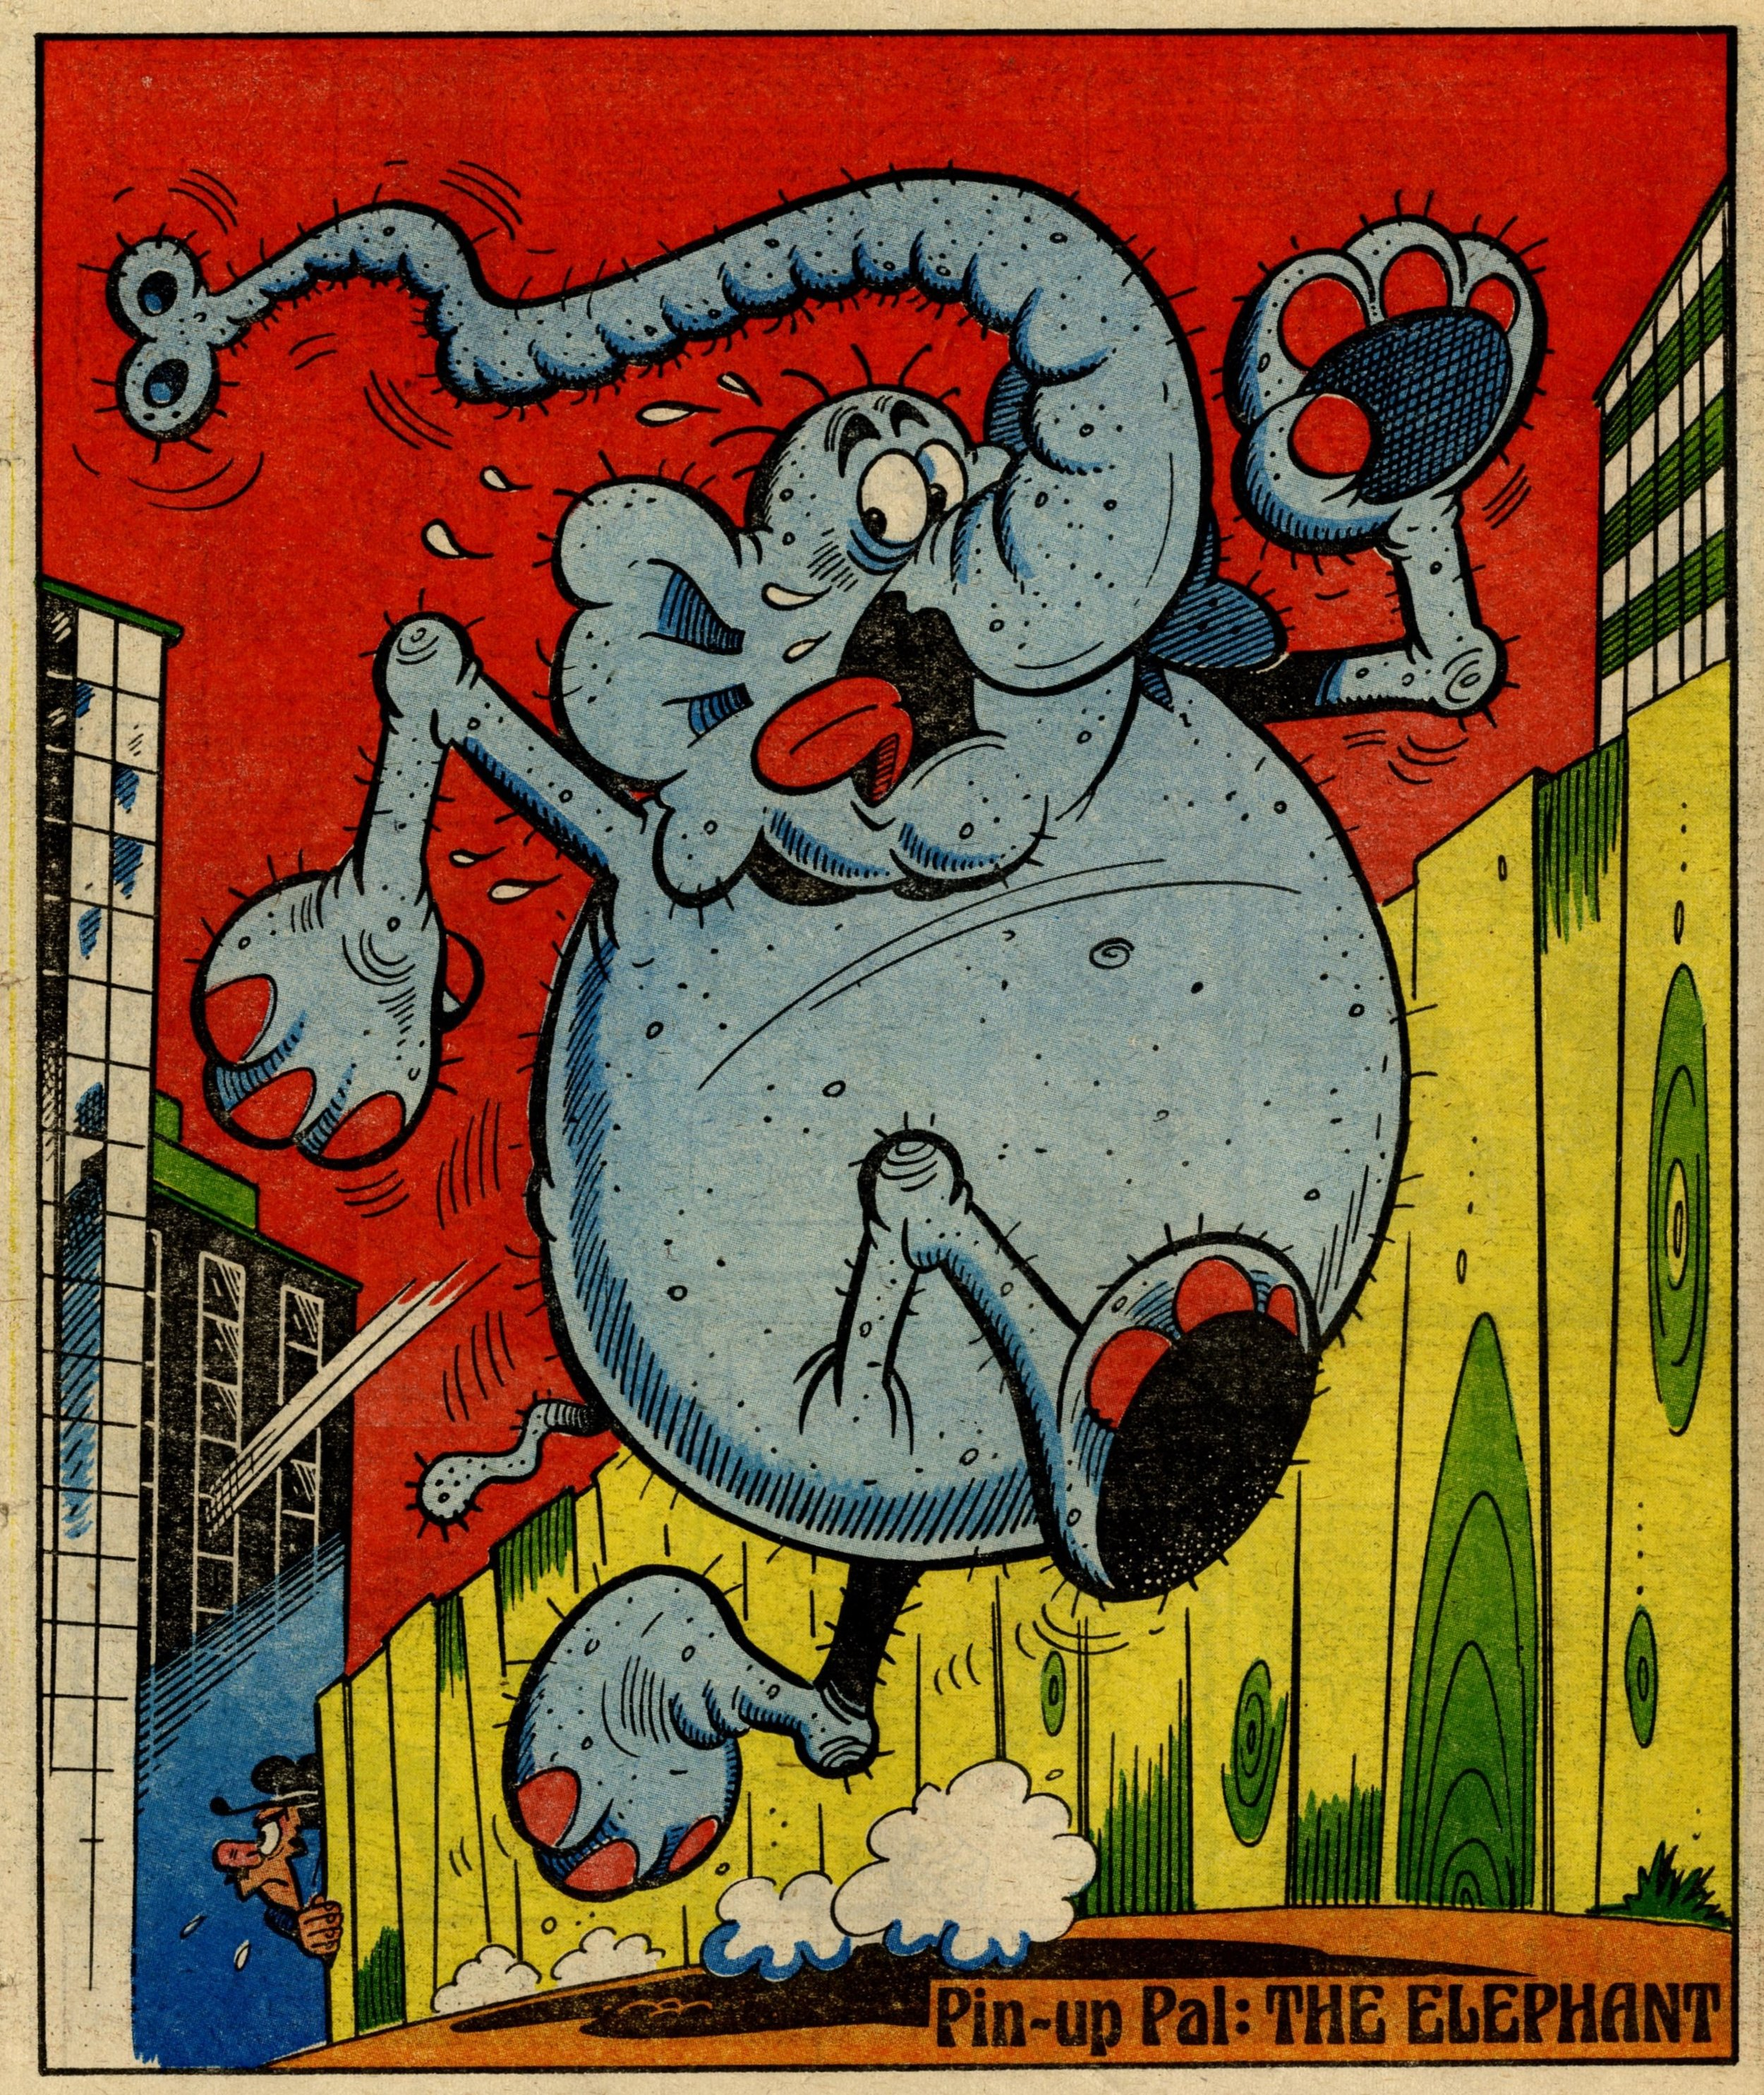 Pin-up Pal: The Elephant, from Elephant on the Run (artist Robert Nixon), 6 January 1979